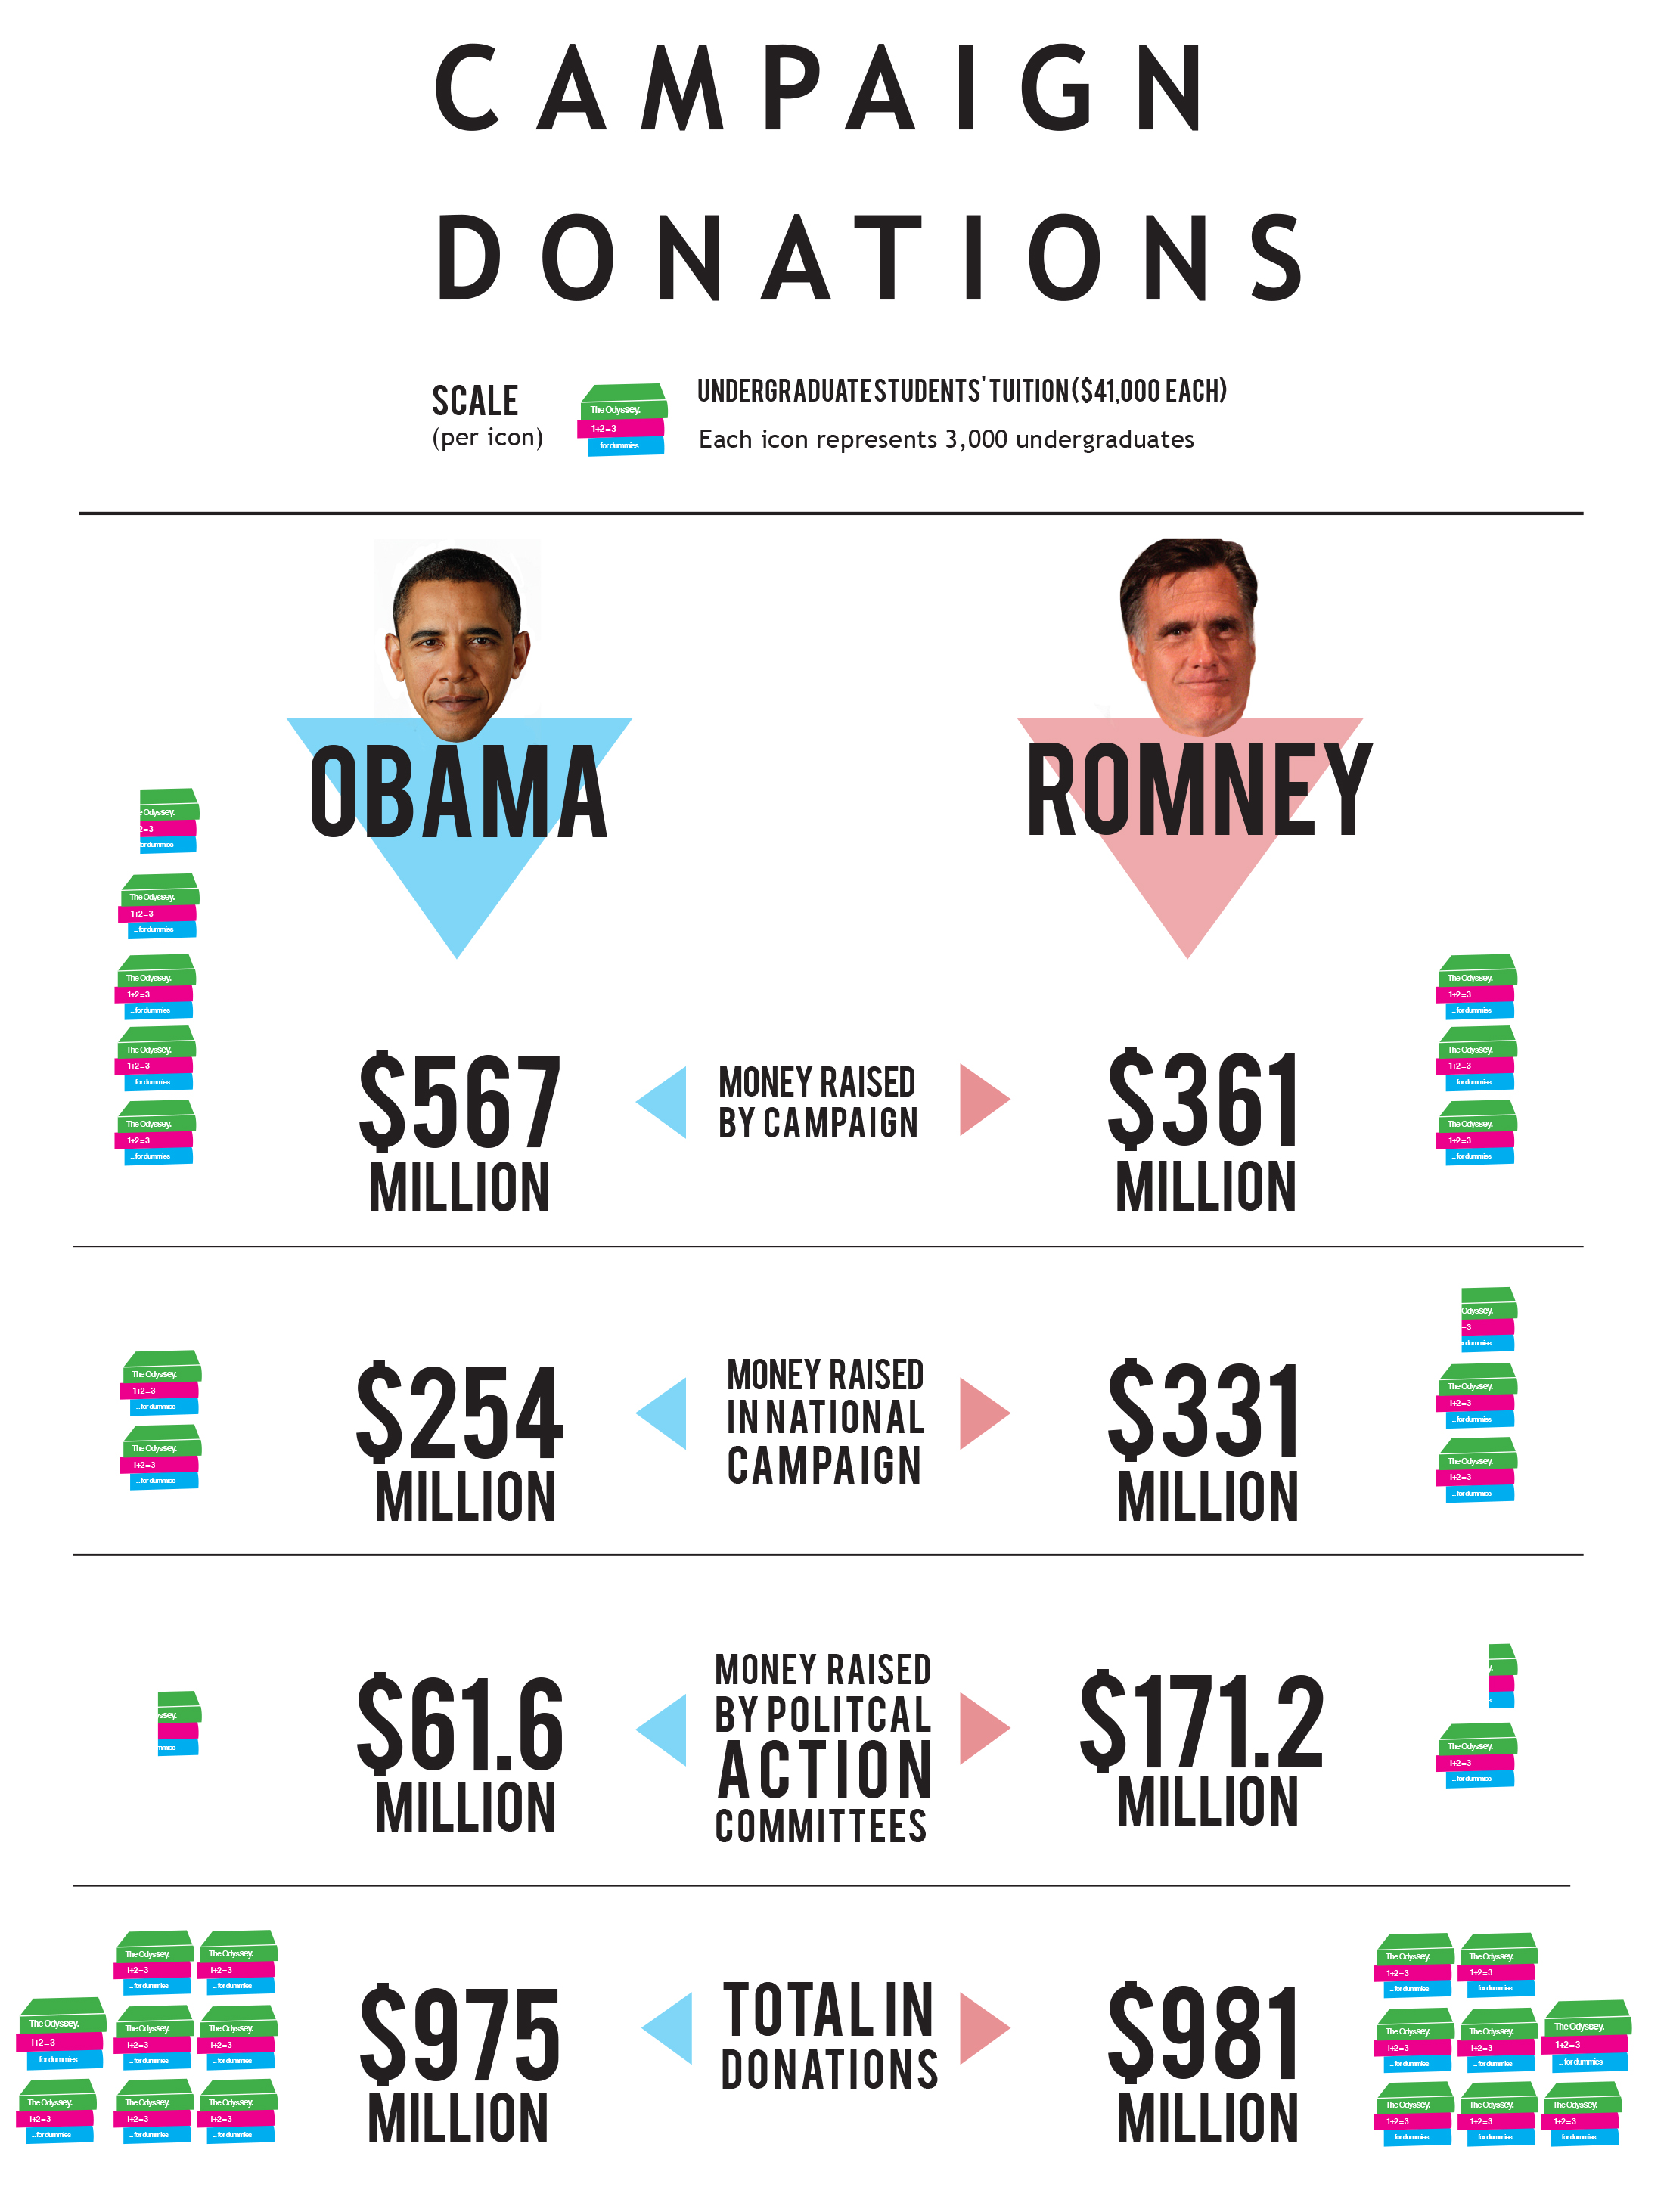 Campaign donations translated in terms of student tuition